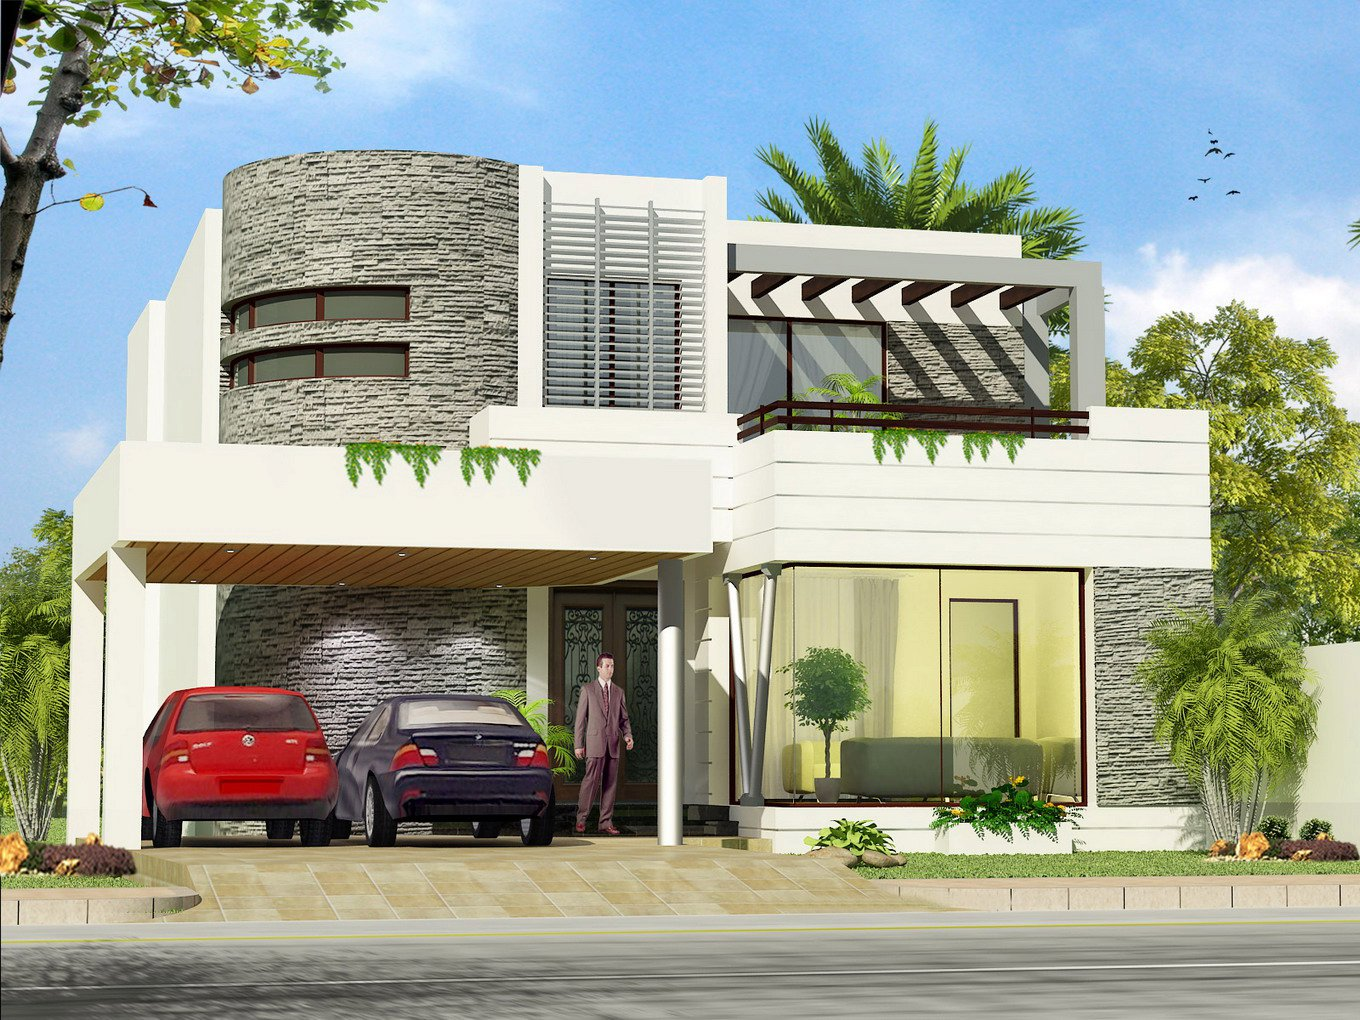 Front Elevation Of The Houses : Front elevation of small houses home design and decor